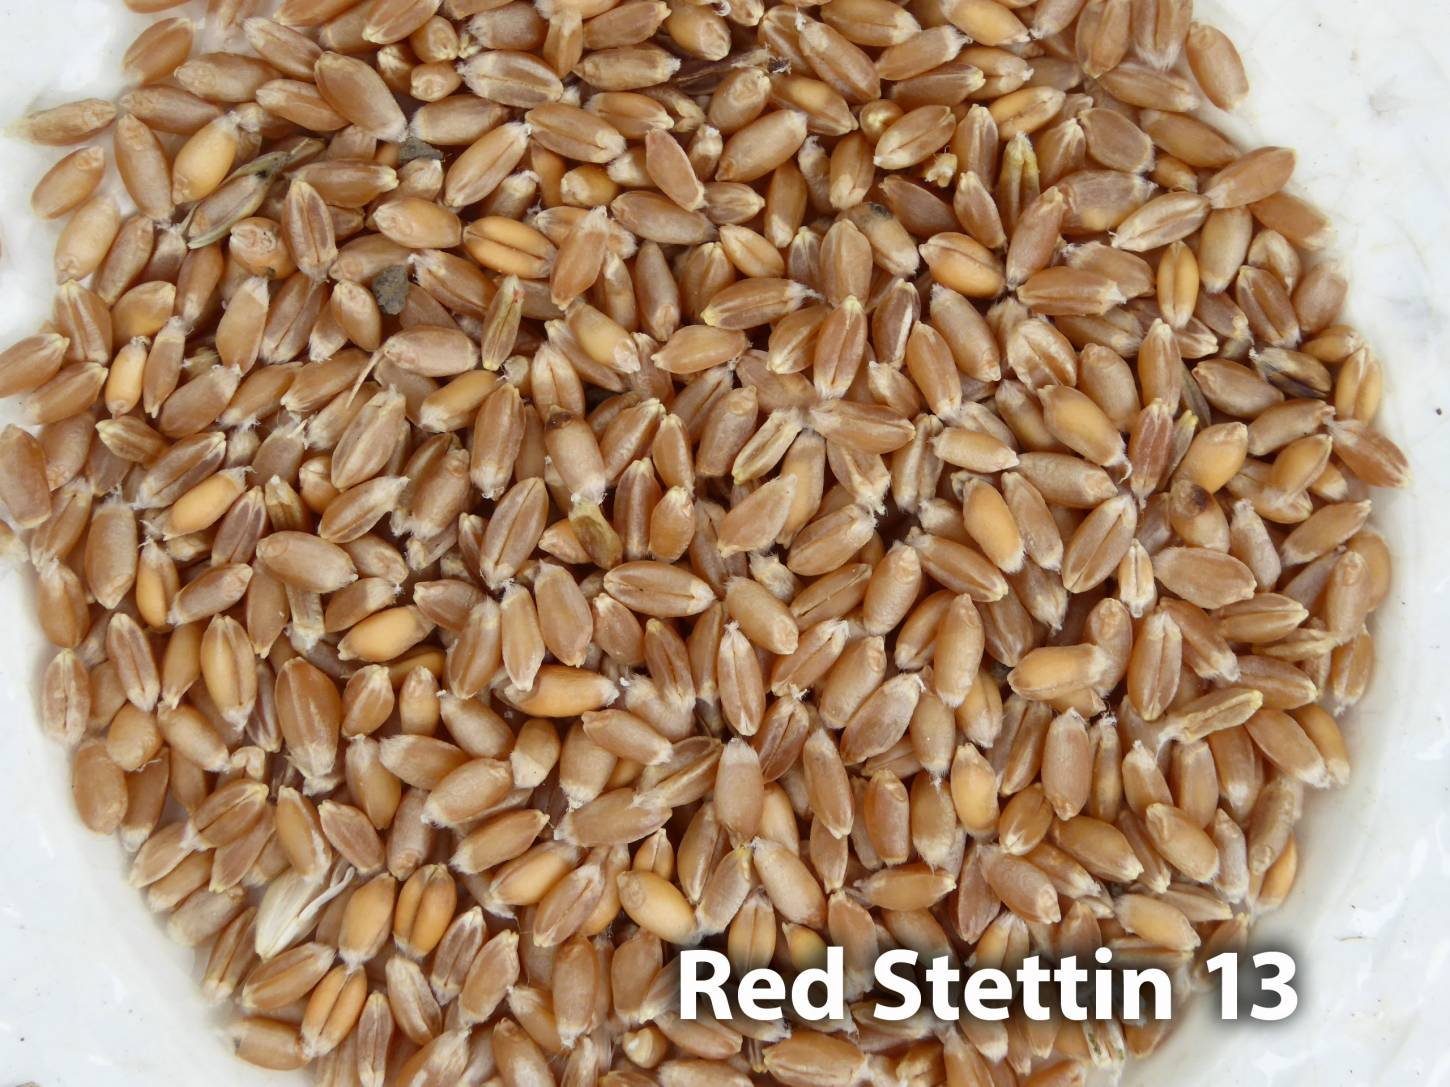 <a href='http://www.wheat-gateway.org.uk/hub.php?ID=57' target='_blank'>Red Stettin</a> grain samples, Red Stettin 13